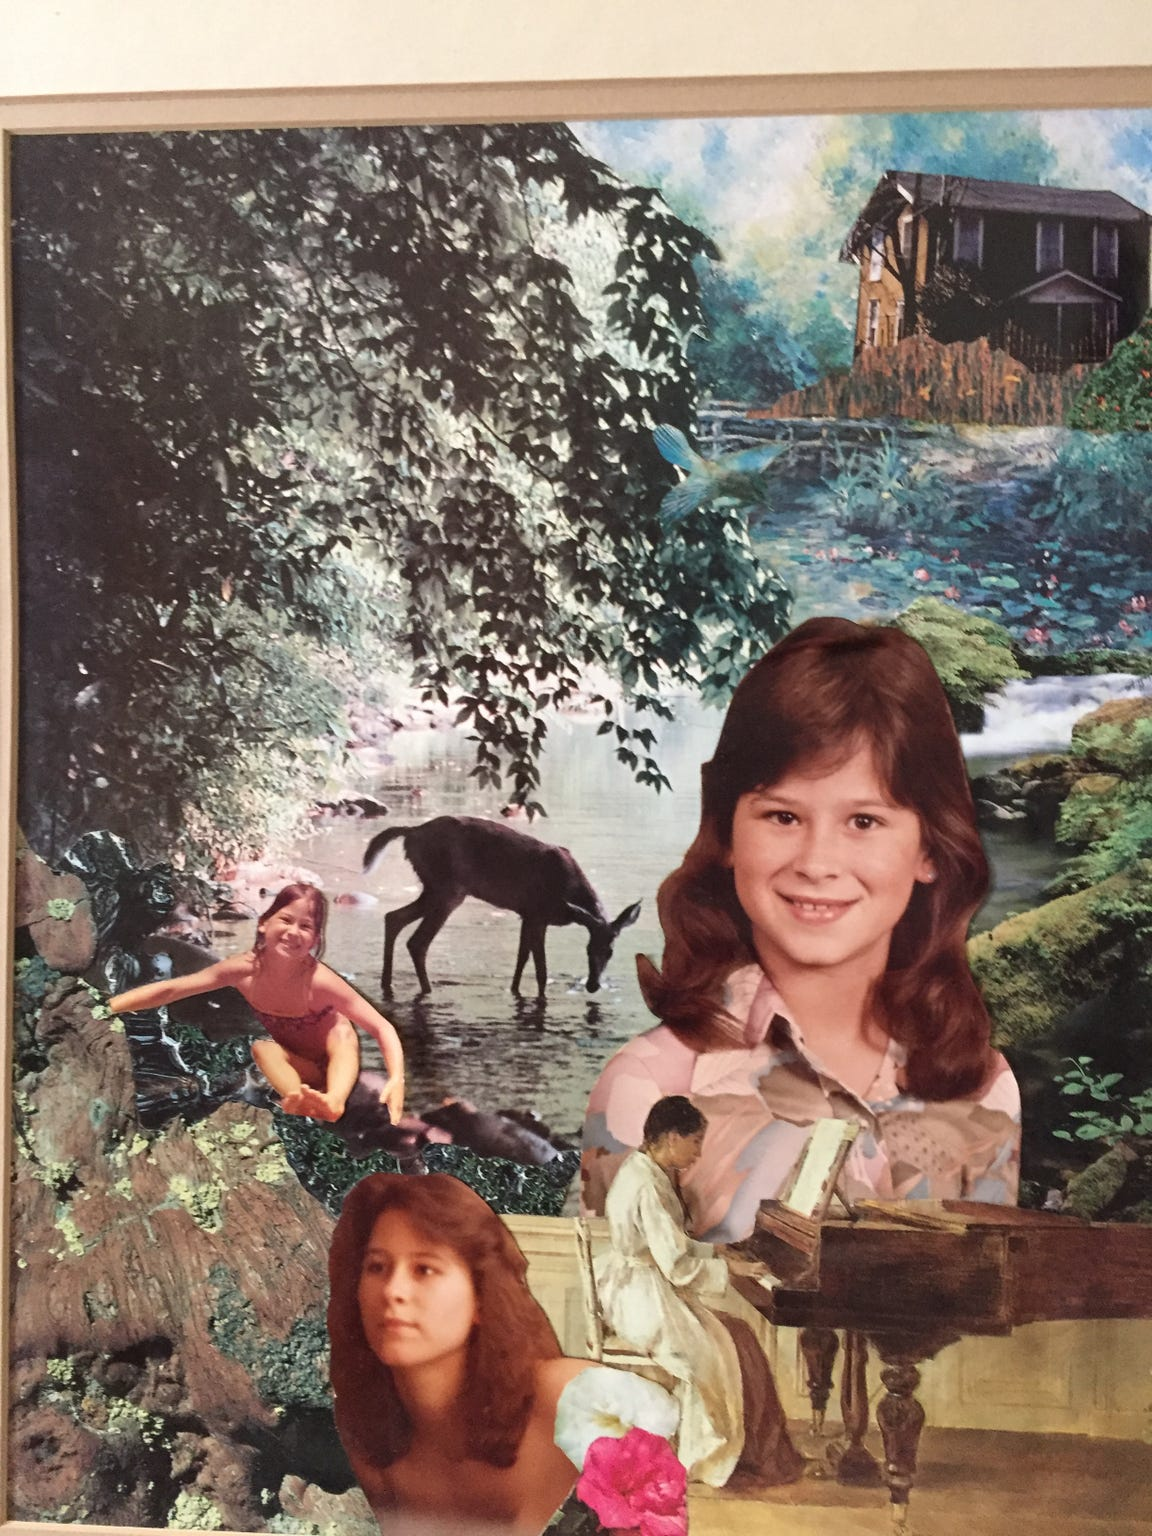 A collage of photographs capturing Annette Craver Vail's